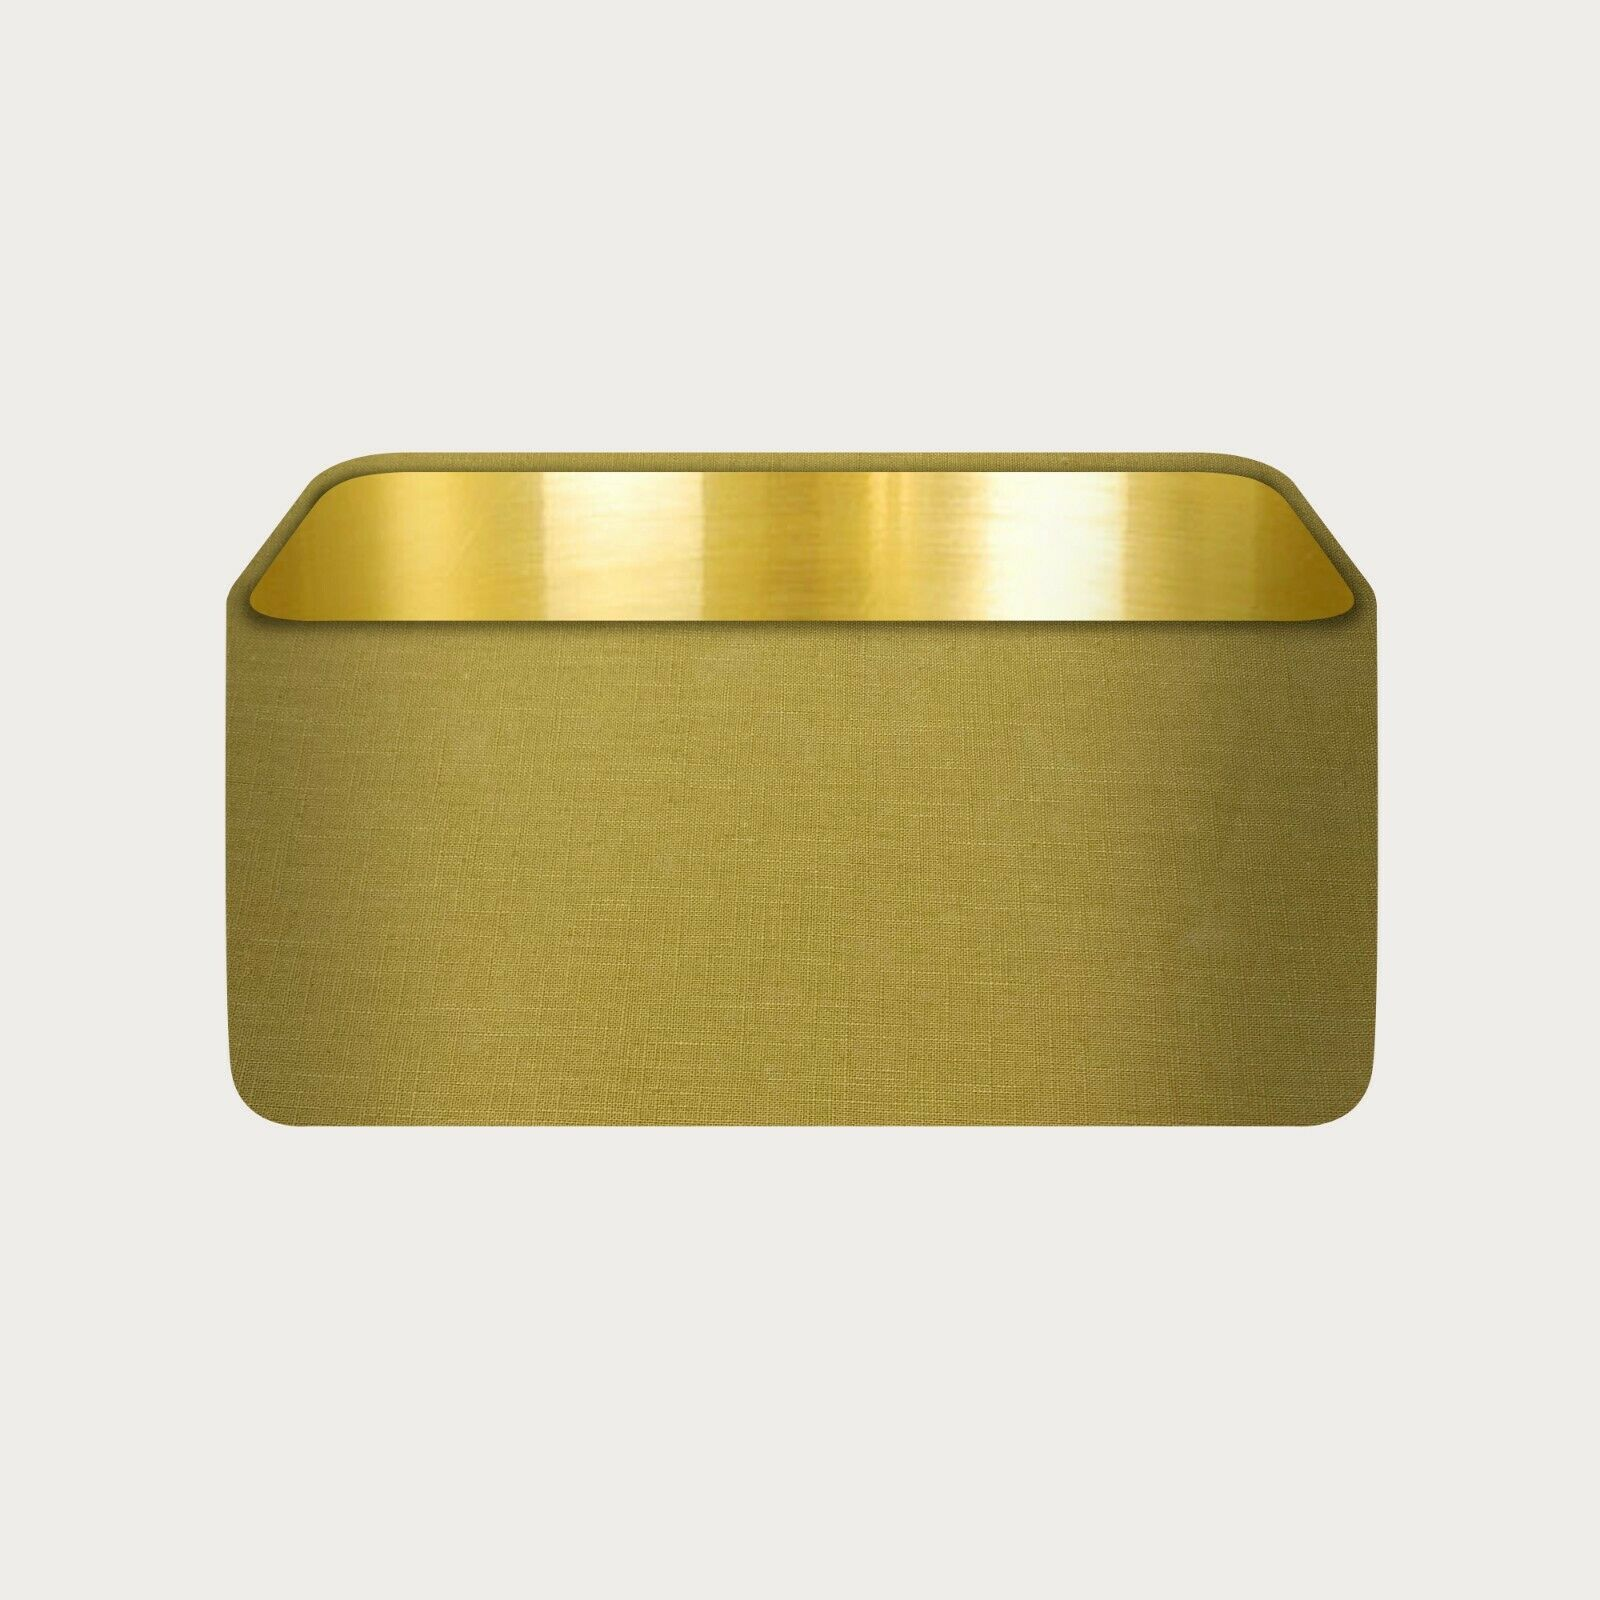 Rounded Rectangle 100% Mustard Linen with Brushed Gold Metallic Lining